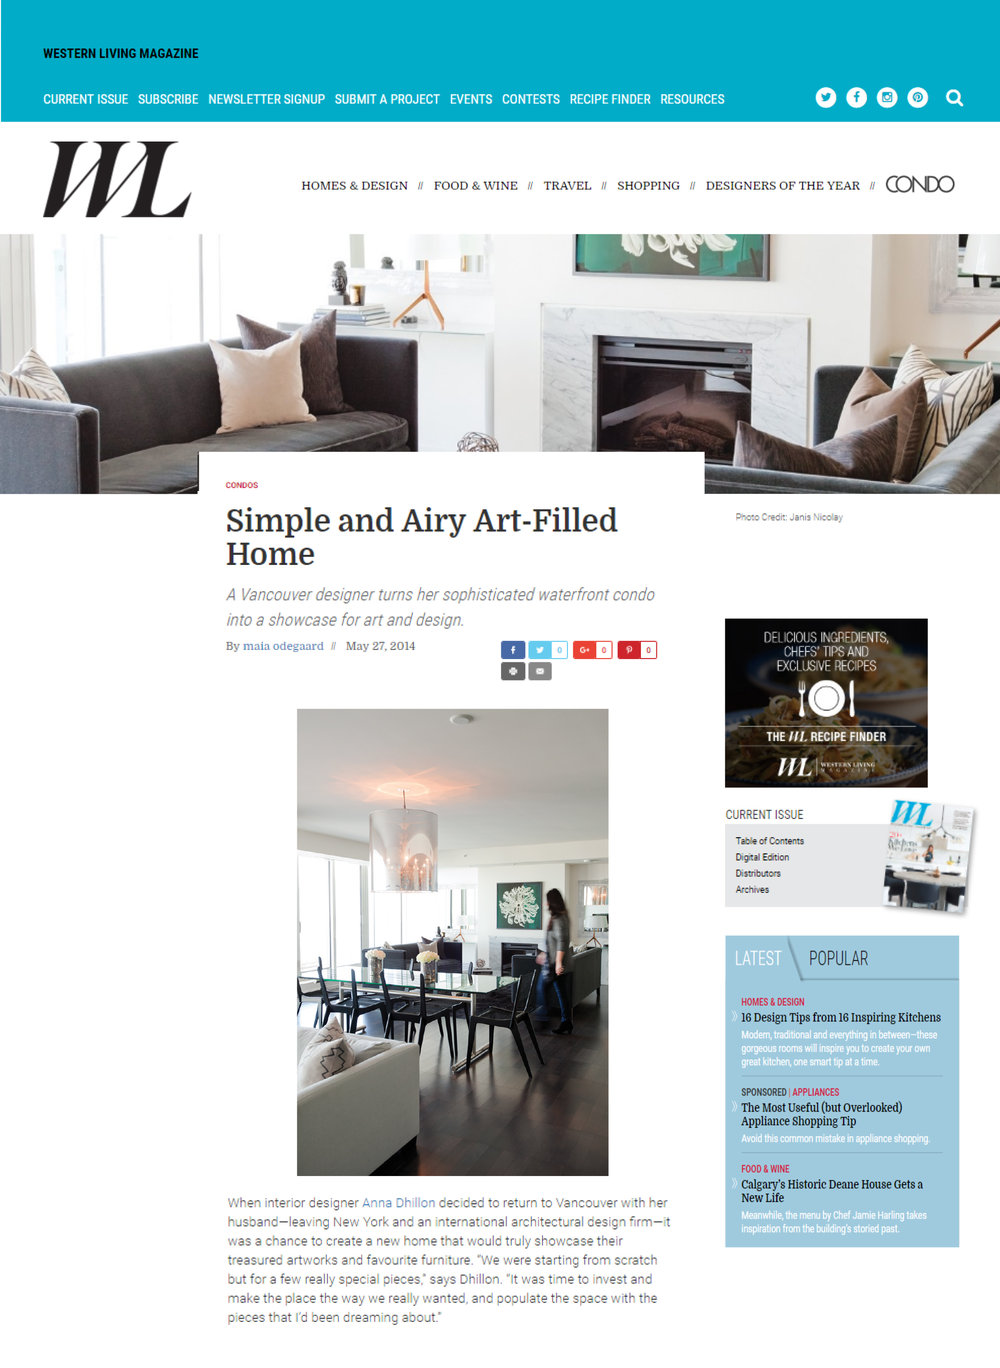 14_05-WLM-Simple_And_Airy_Art-Filled_Home.jpg